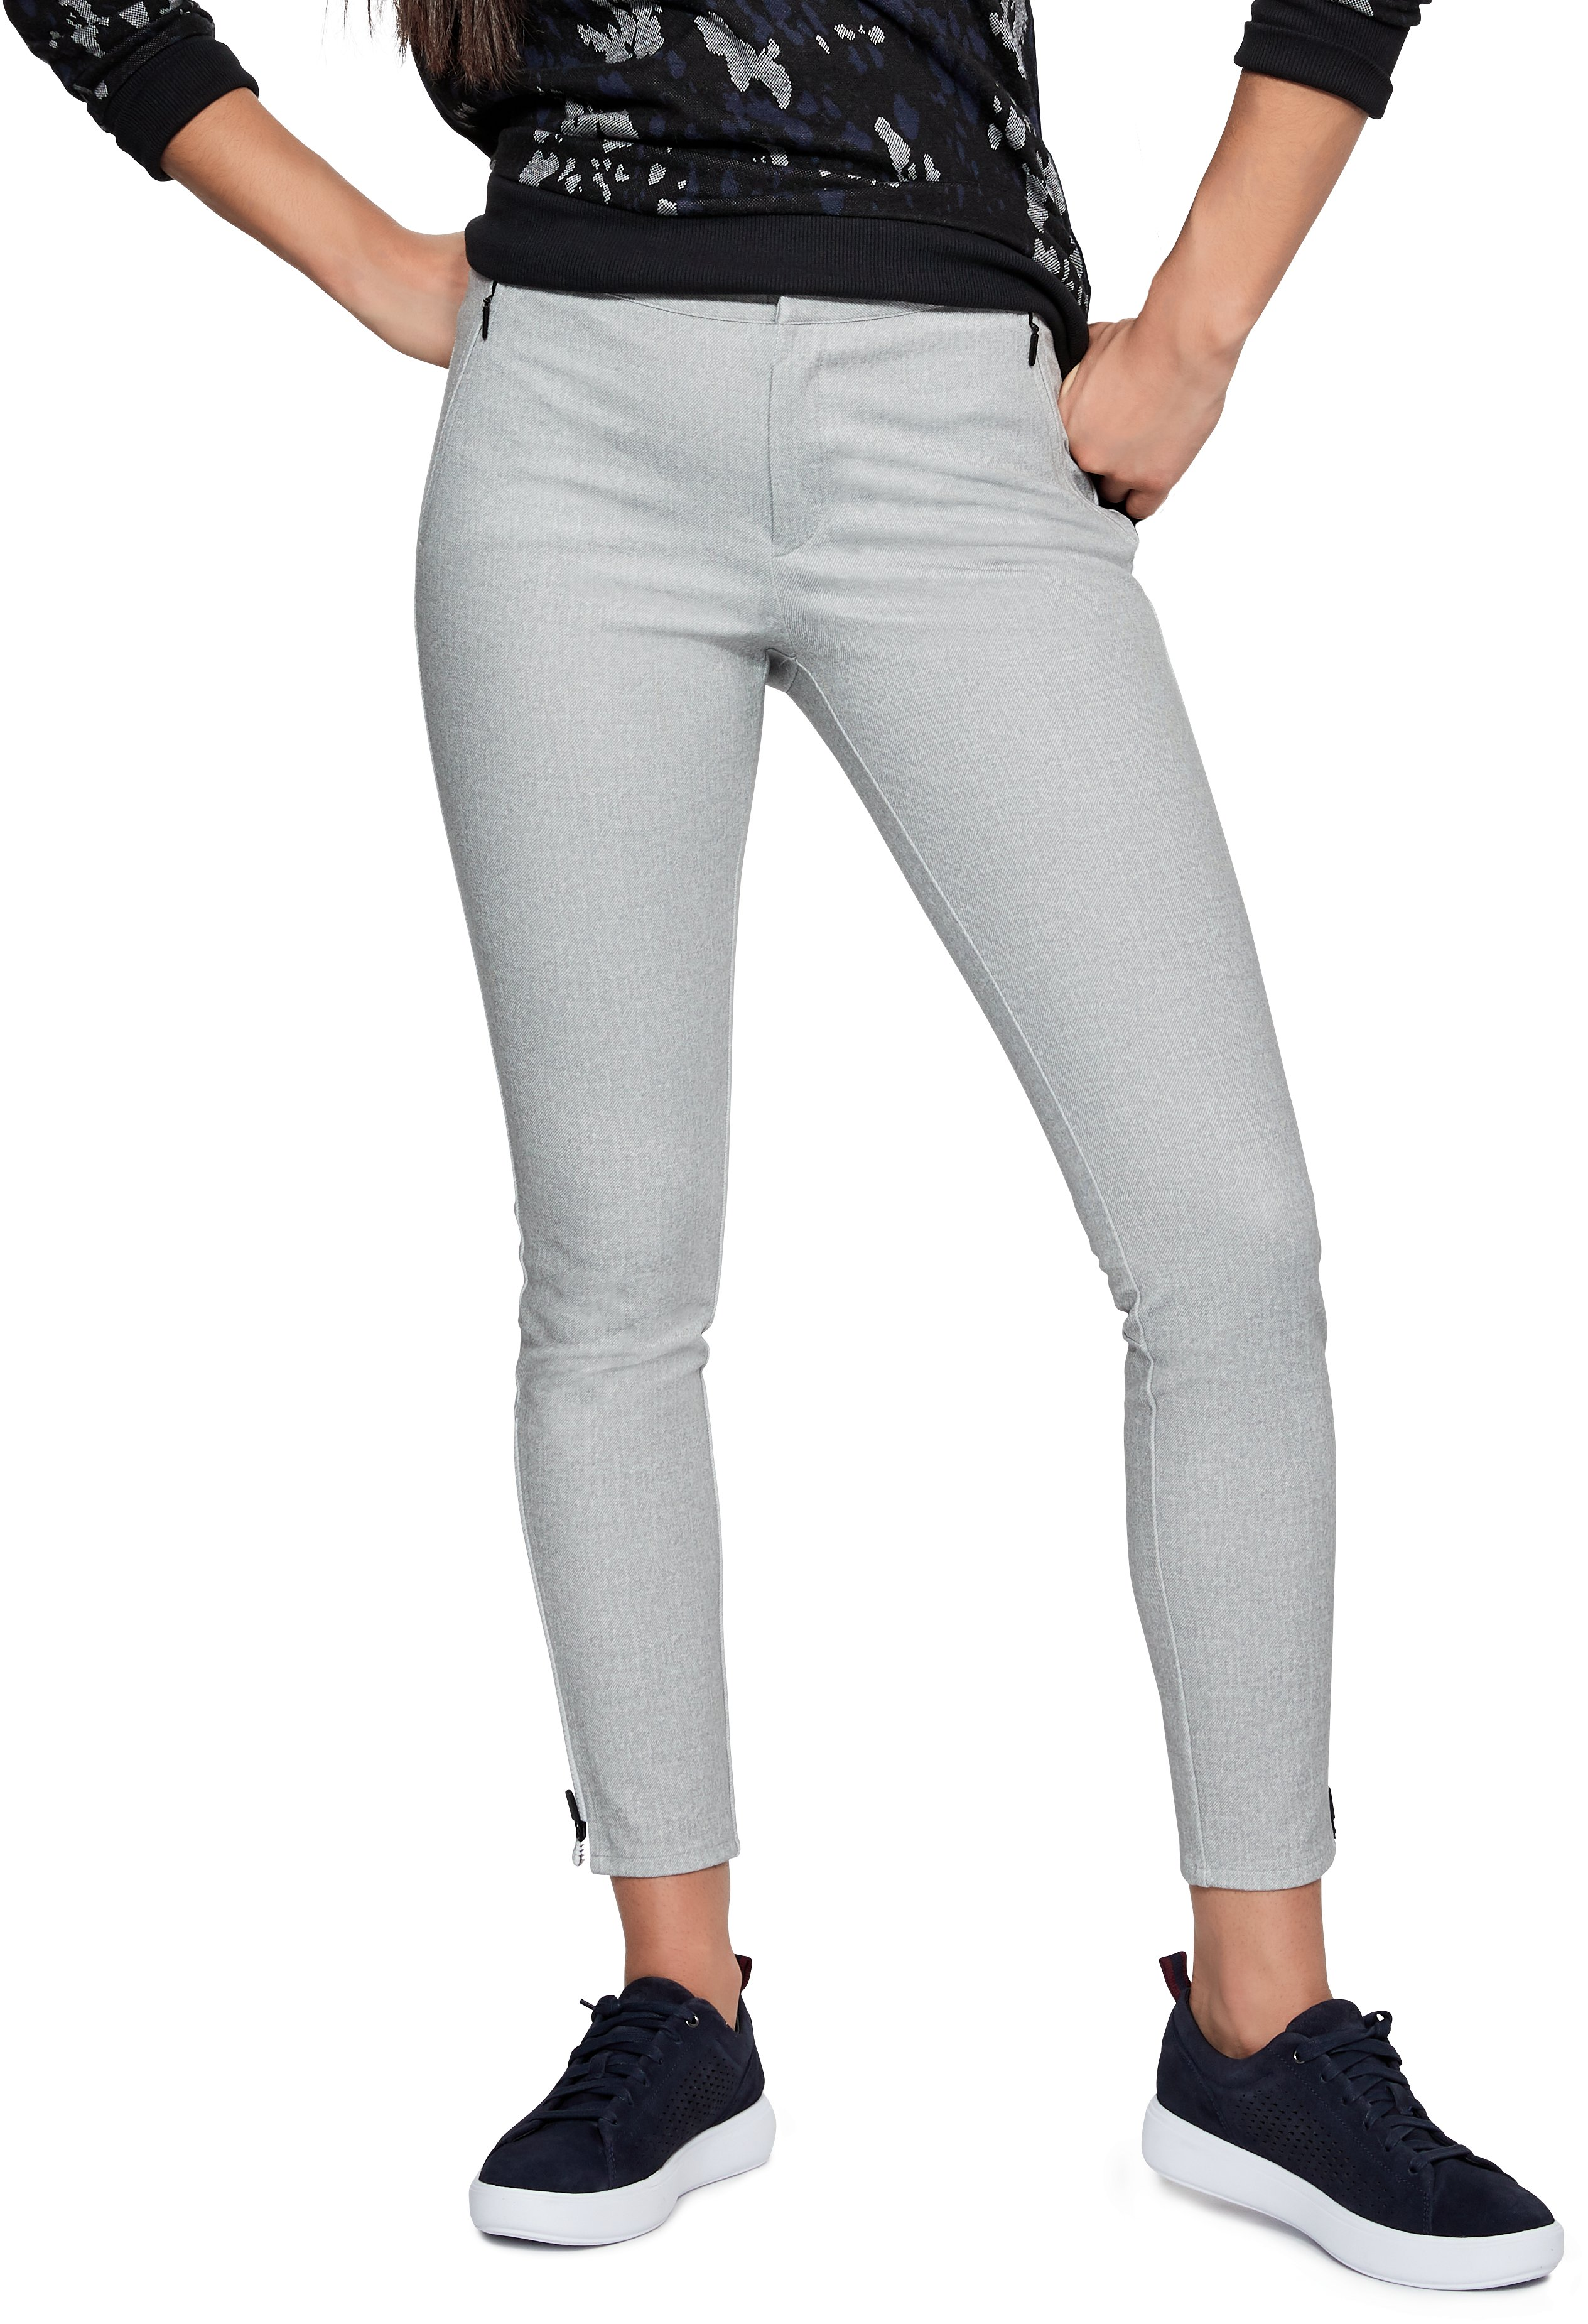 Women's UAS Tailored Stretch Pants 2 Colors $112.99